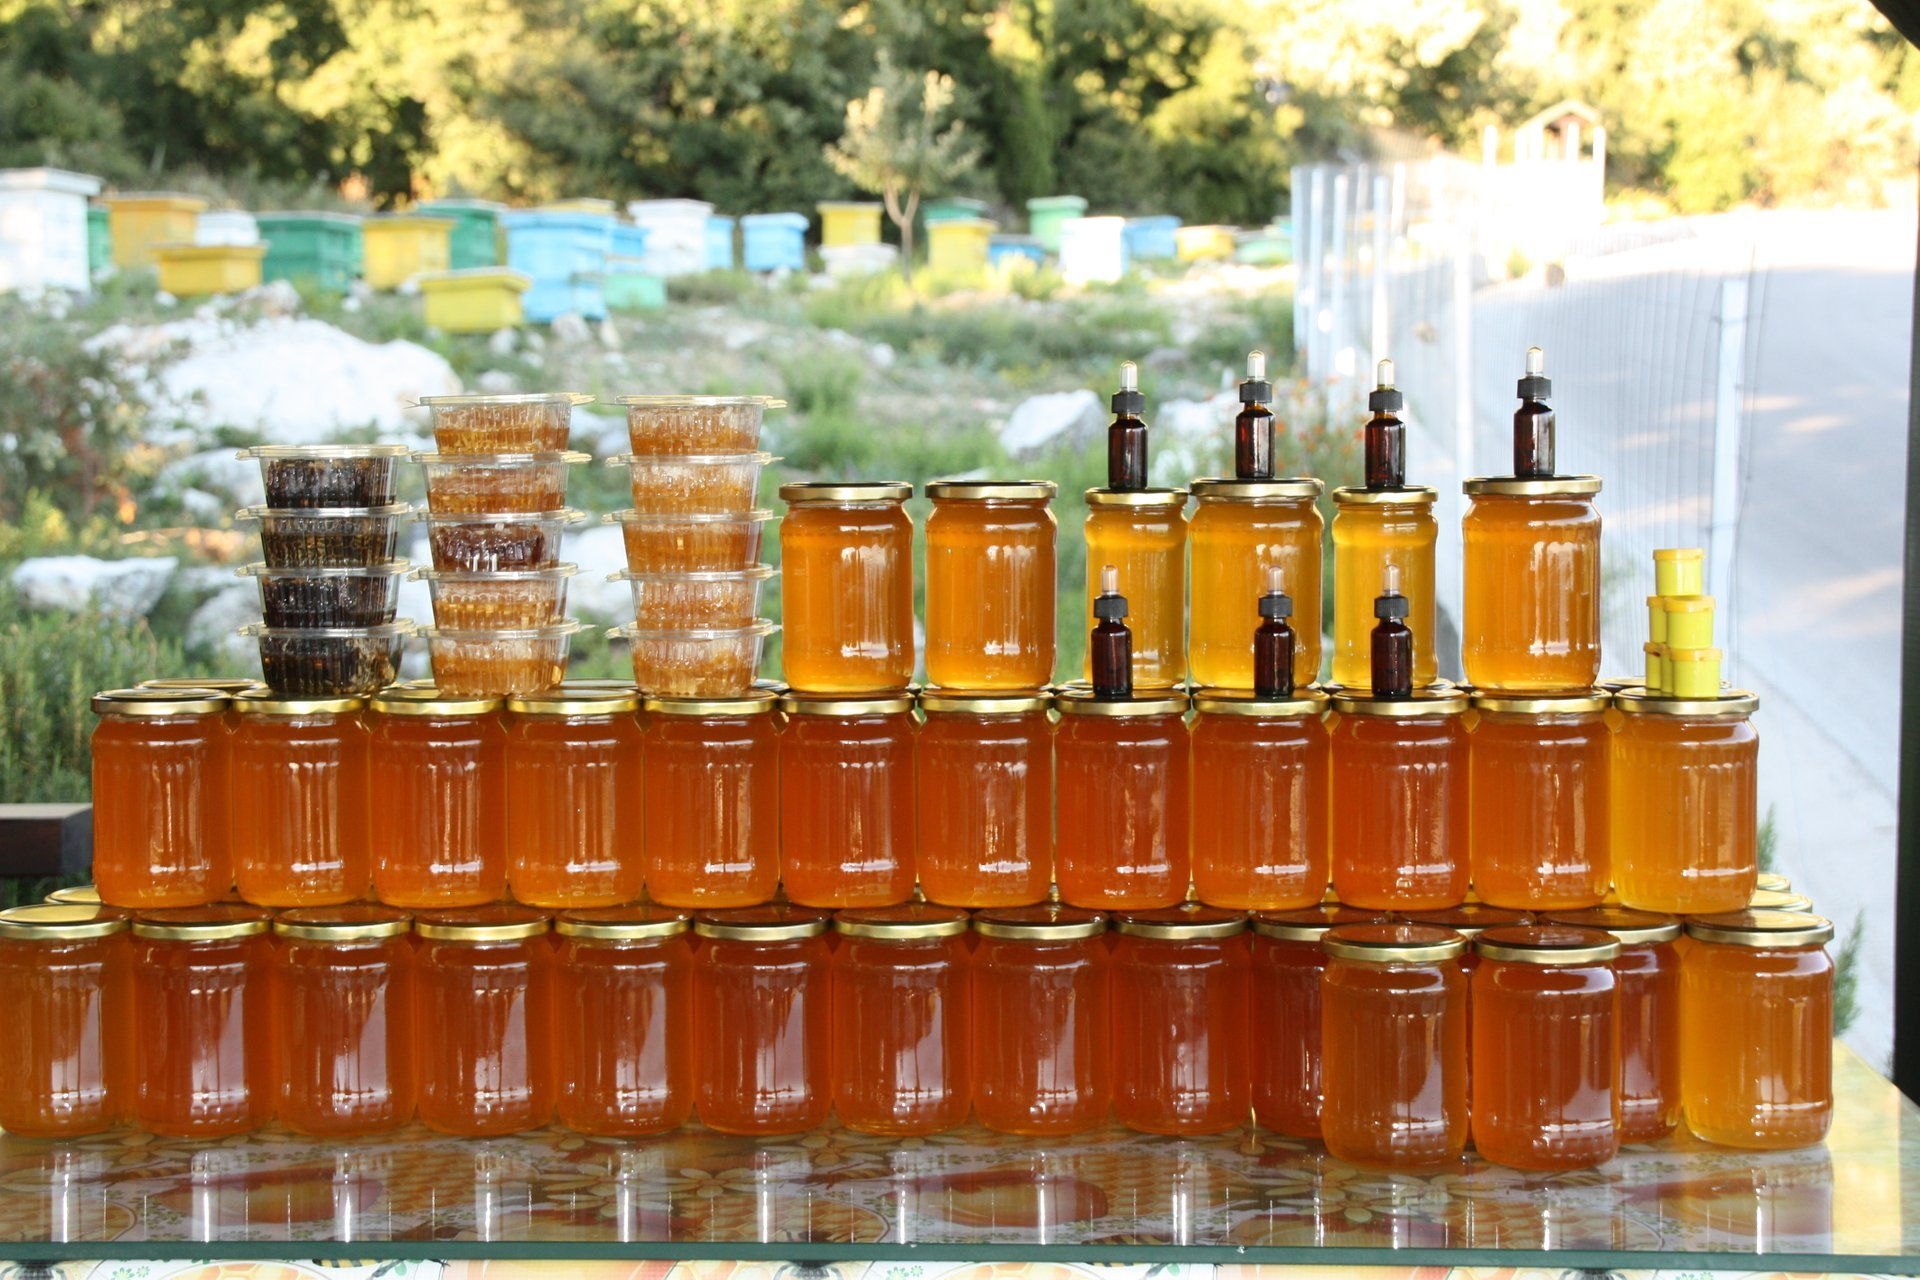 Honey Harvest in Albania 2019 - Best Time